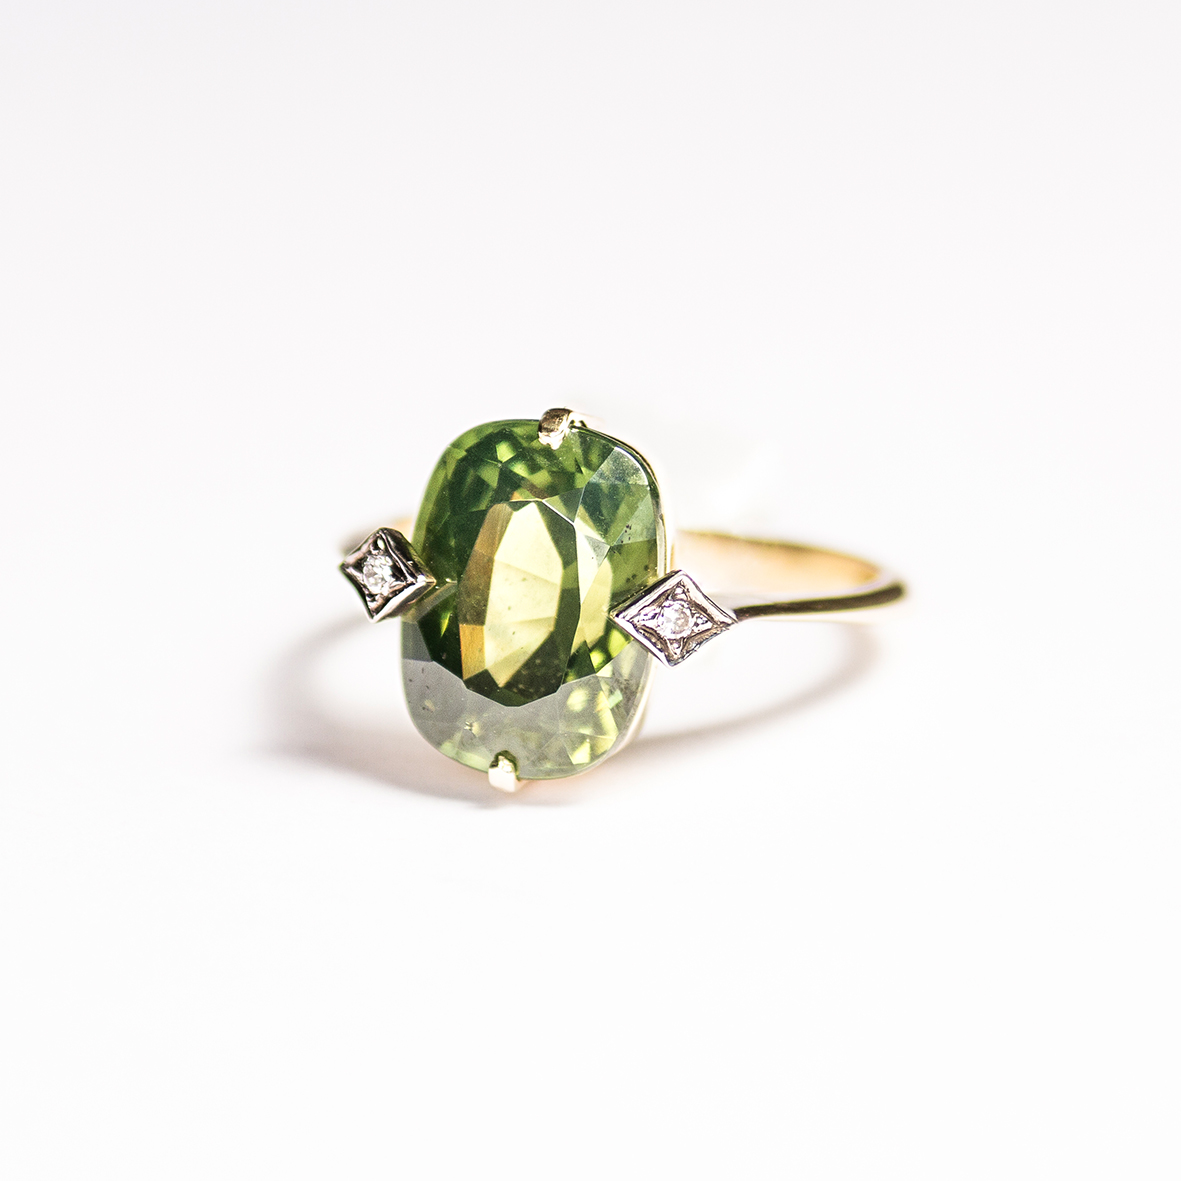 1. OONA_gems of ceylon_principal_green tourmaline ring